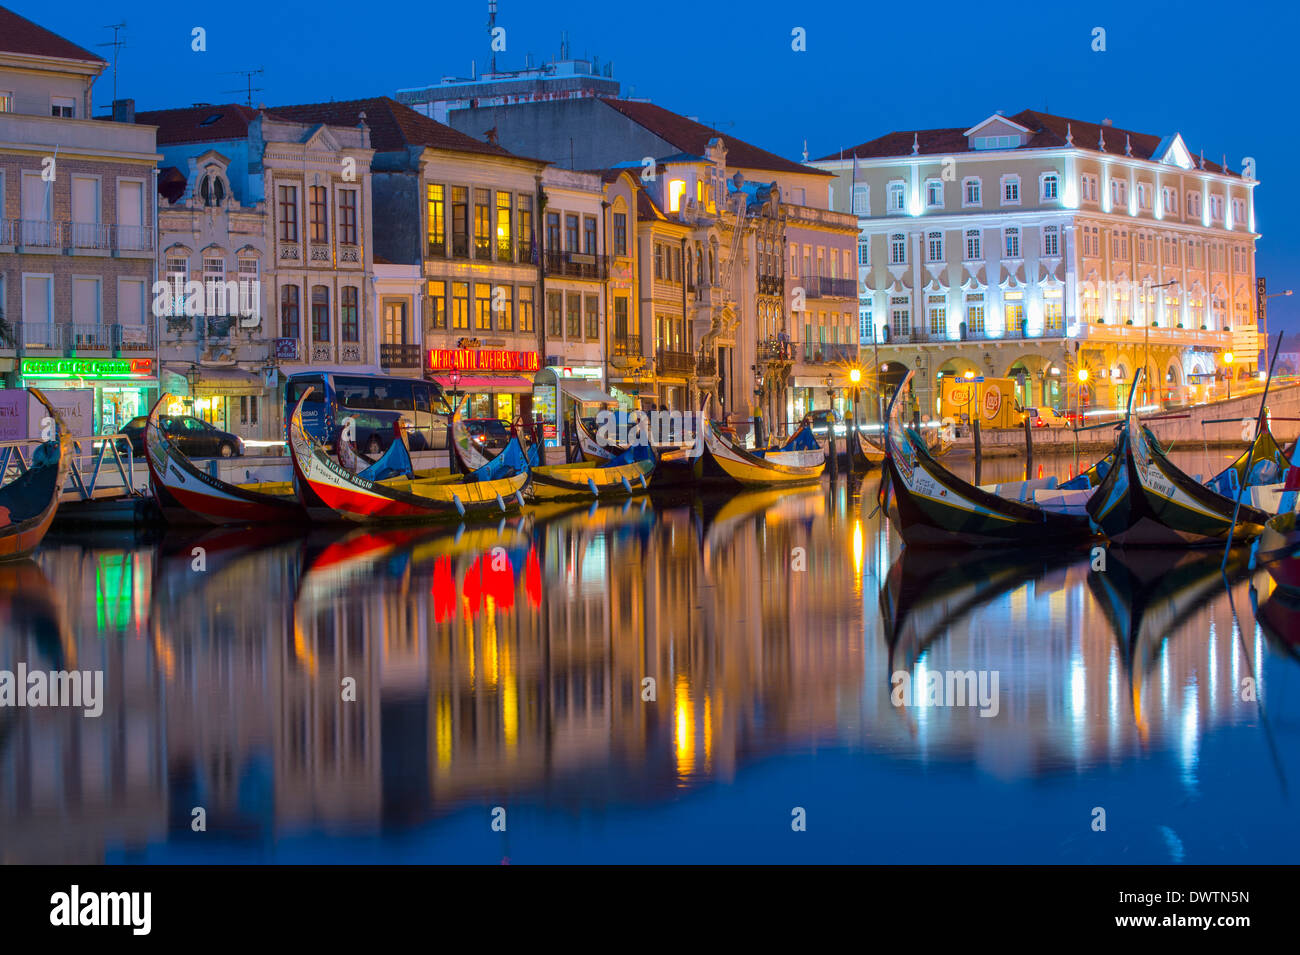 Gondola like Moliceiros boats anchored along the Central Channel at night, Aveiro, Beira, Portugal - Stock Image